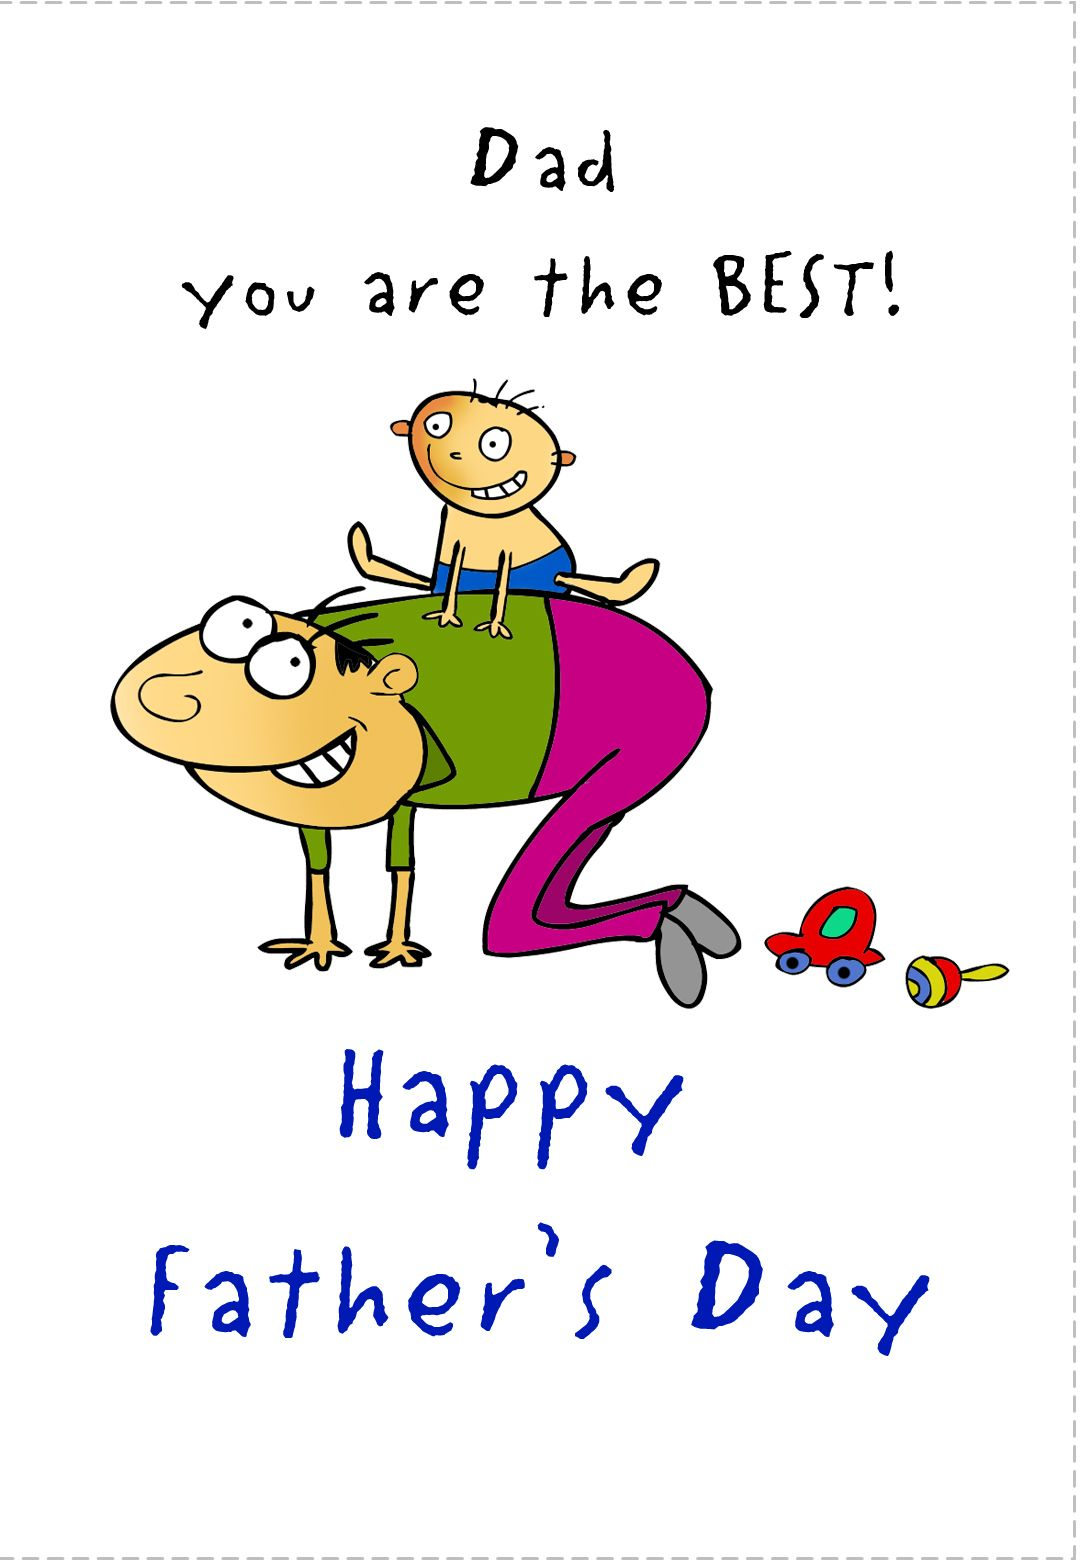 Fathersday Card Free Printable Customize Add Images